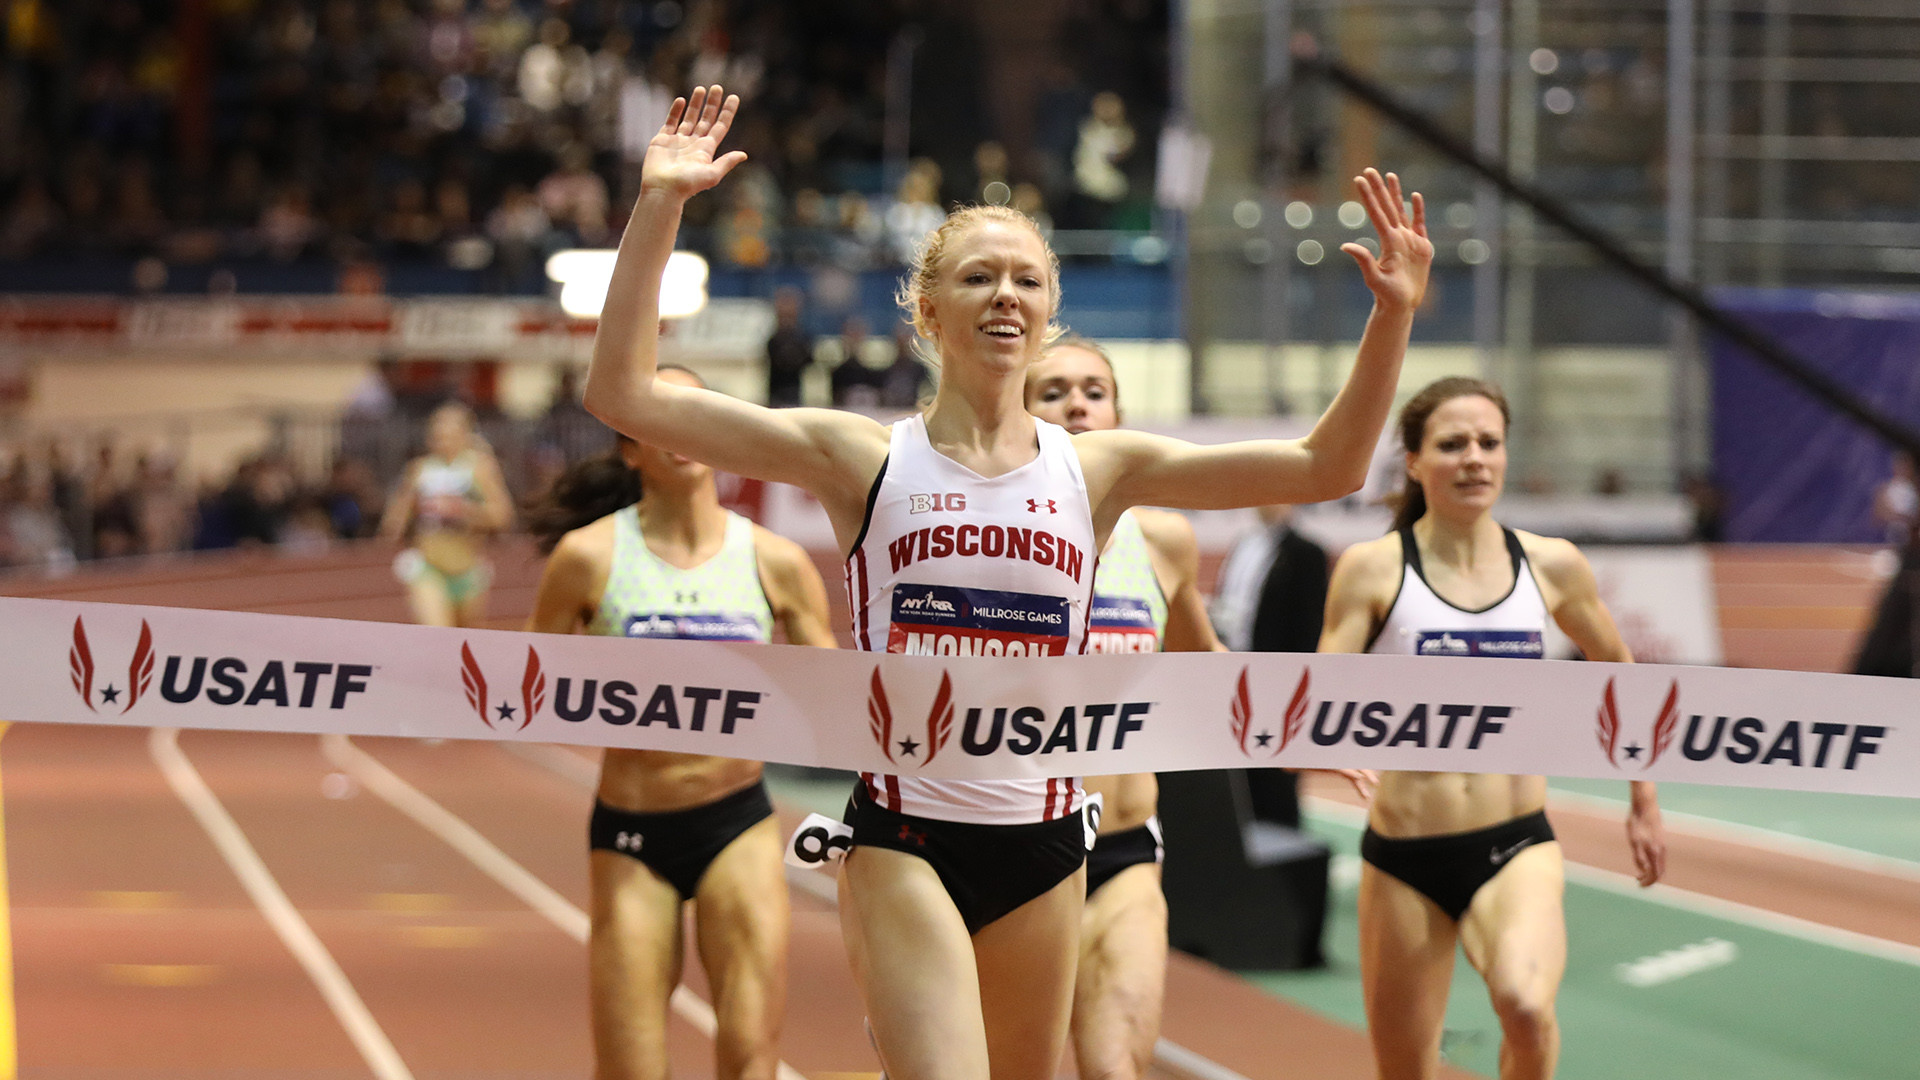 The 113th NYRR Millrose Games set for February 8th will feature dozens of  Olympians and world class runners